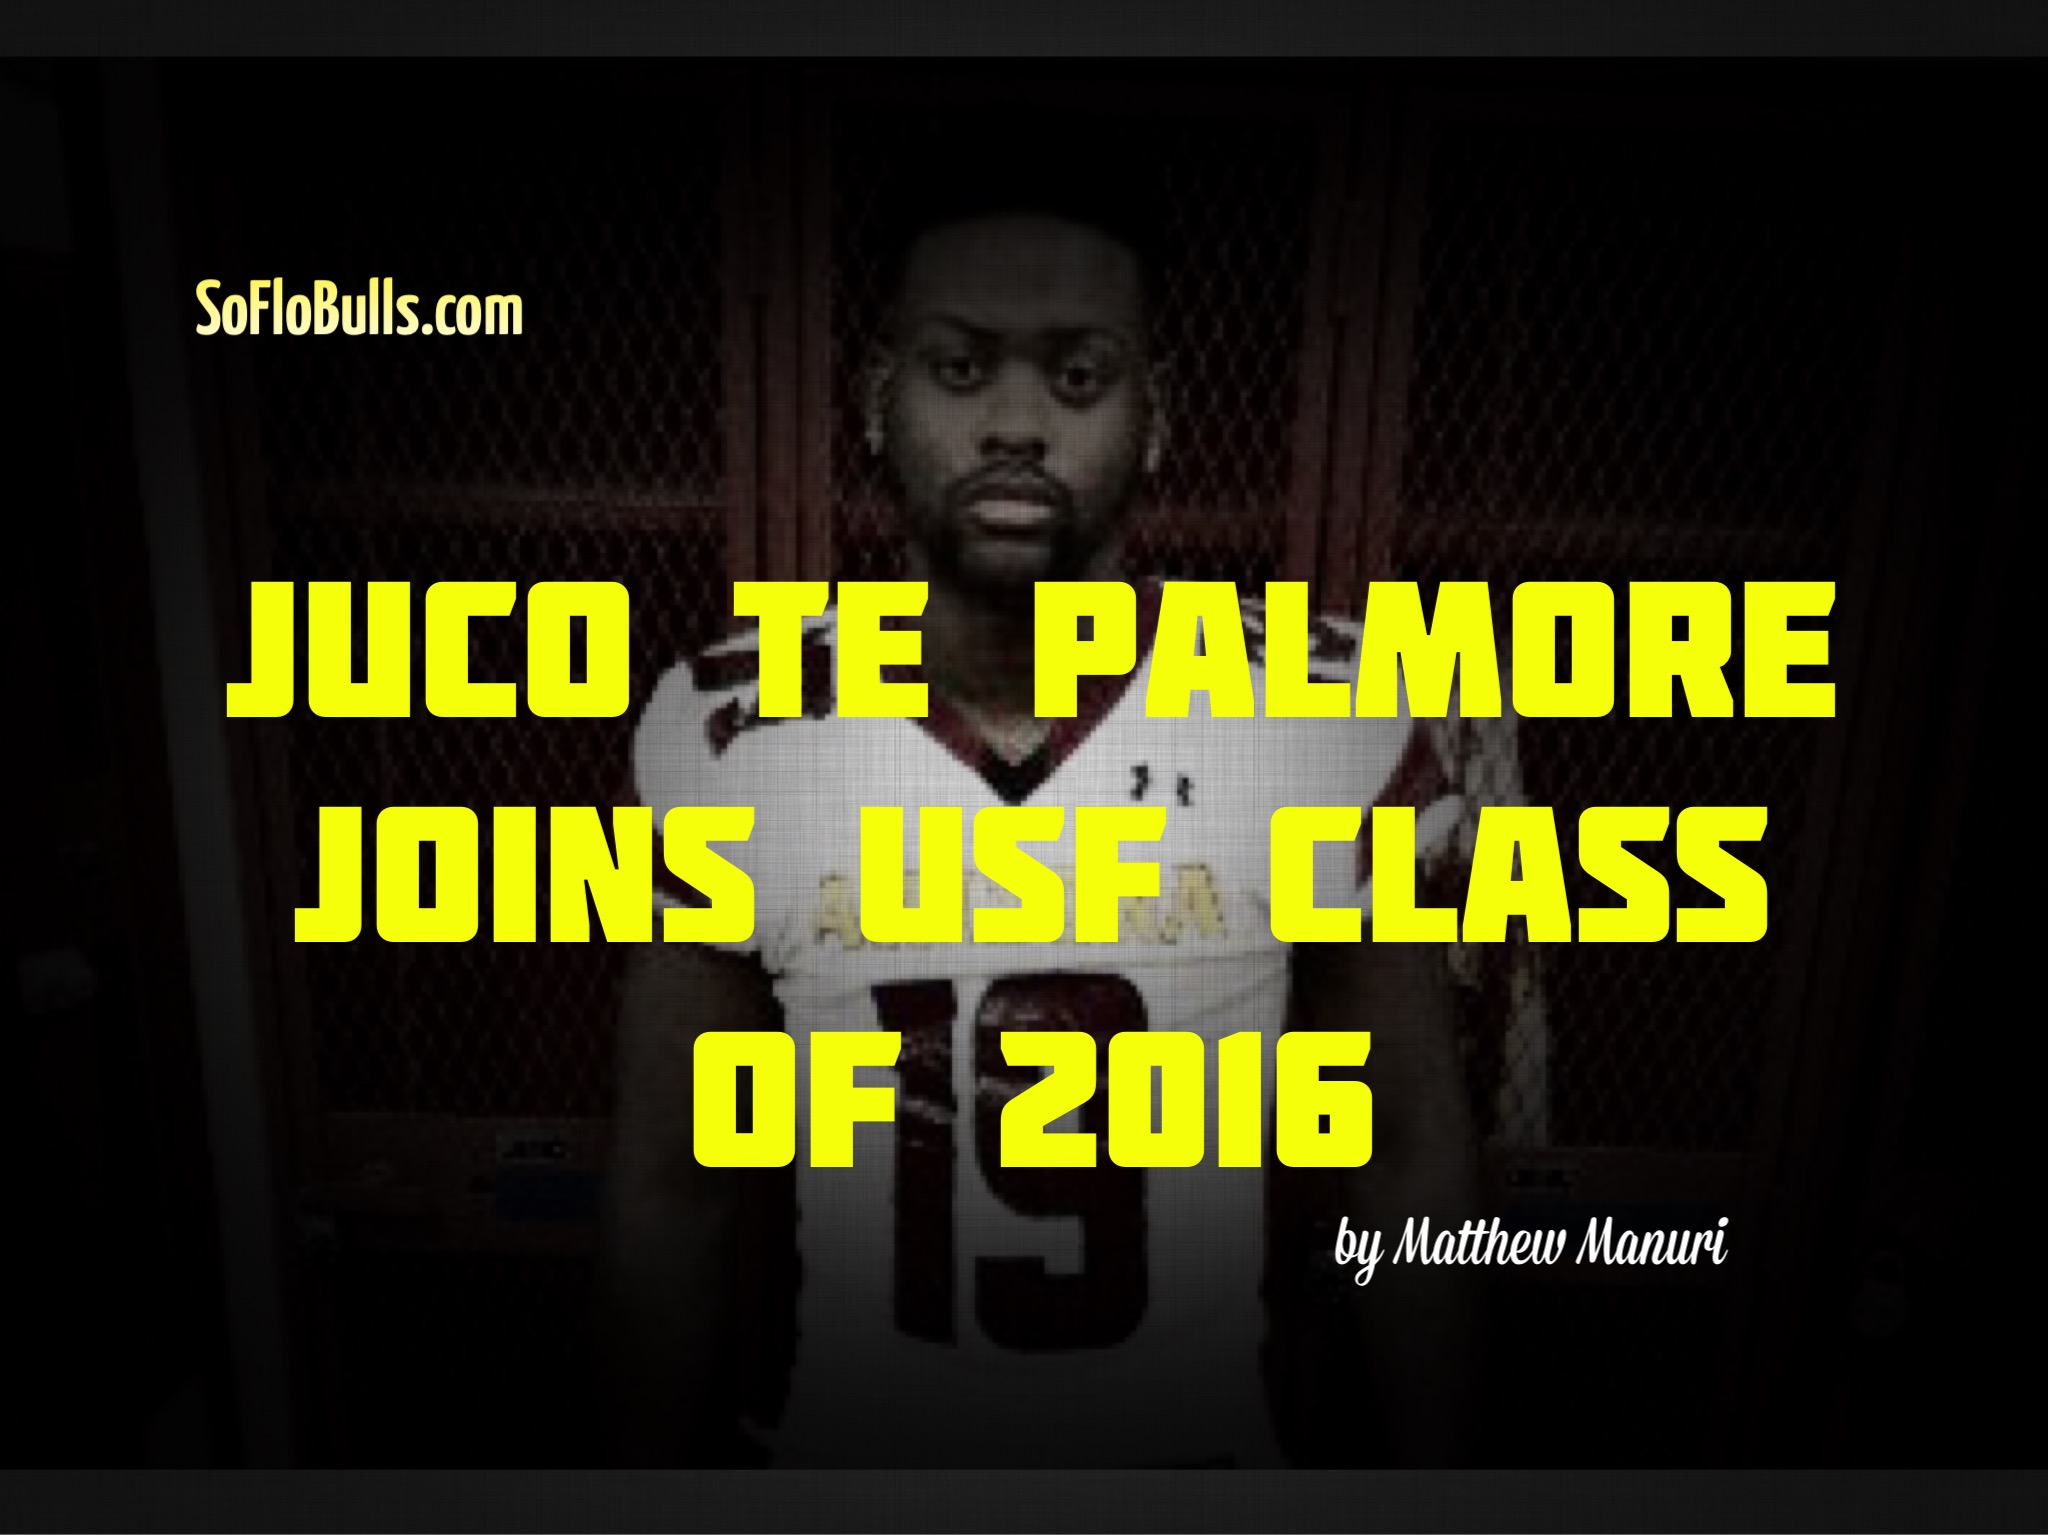 JUCO TE Palmore Joins USF Class of 2016 by Matthew Manuri (2048x1535)